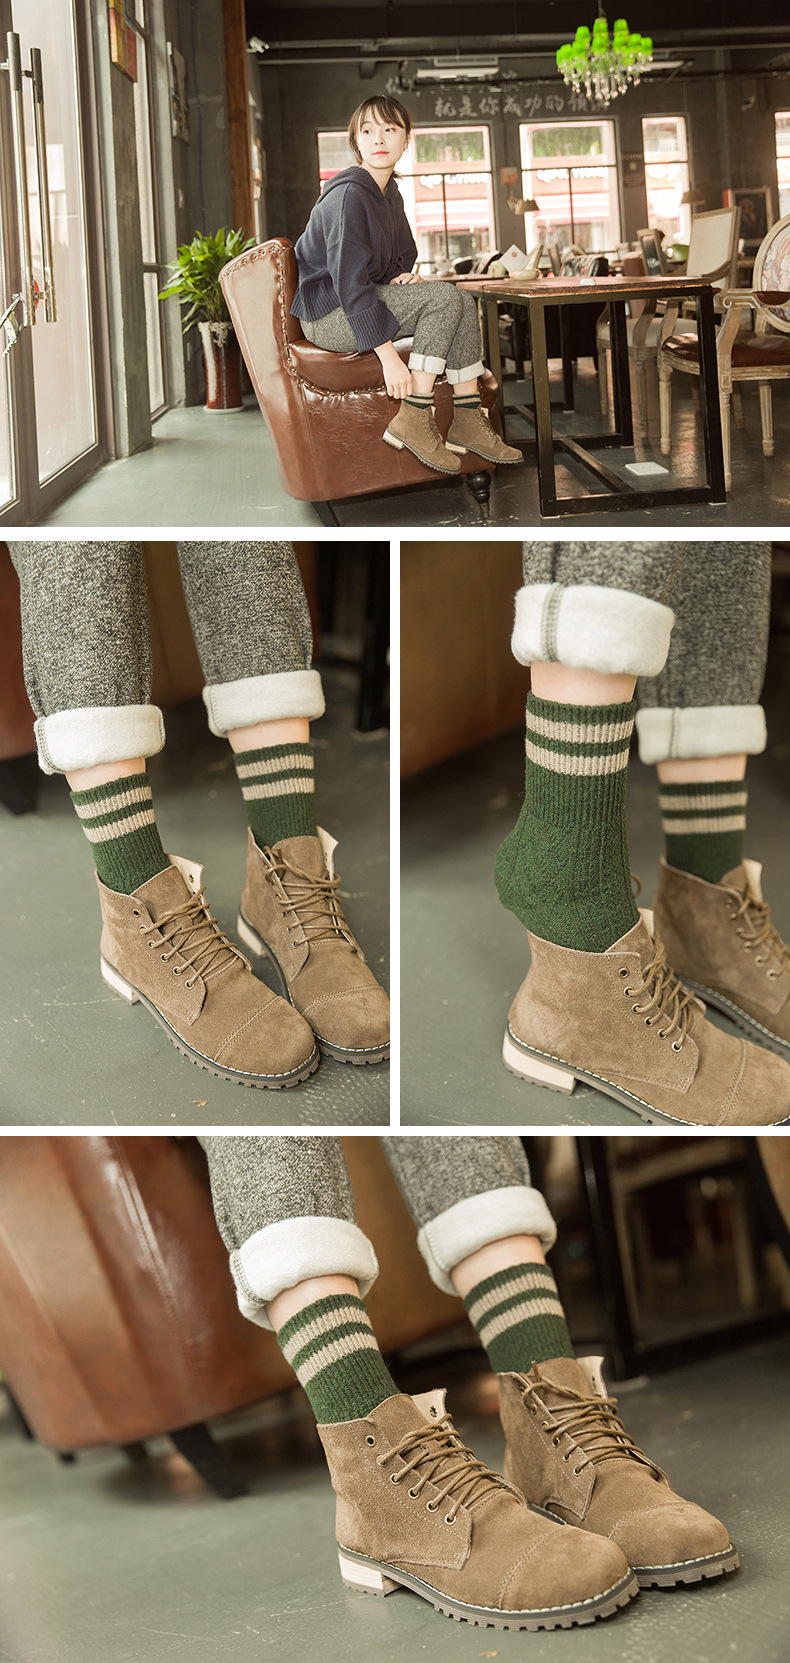 HTB1NTPOadfvK1RjSspfq6zzXFXaS - 5 Colors New Fashion Retro Wool Women Socks Autumn Winter Wamer Cotton Girl Socks Female Japanese Tube Sock Students Hosiery